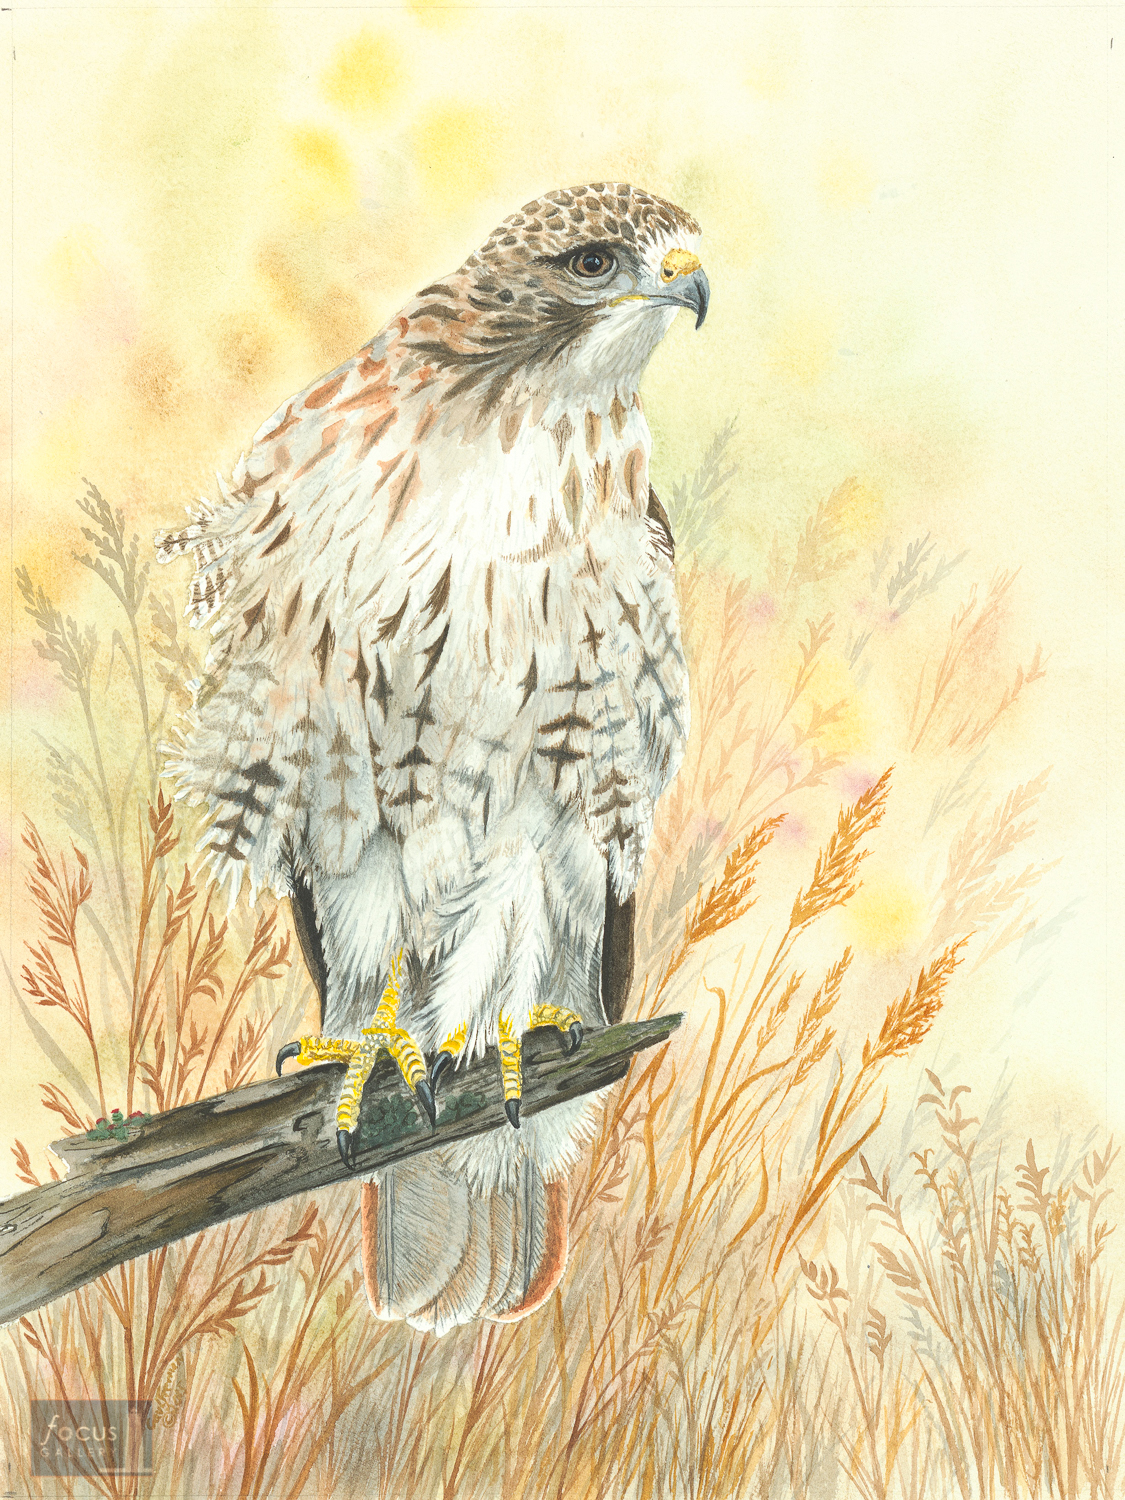 Original watercolor painting of a Red-tailed Hawk perched on a branch.